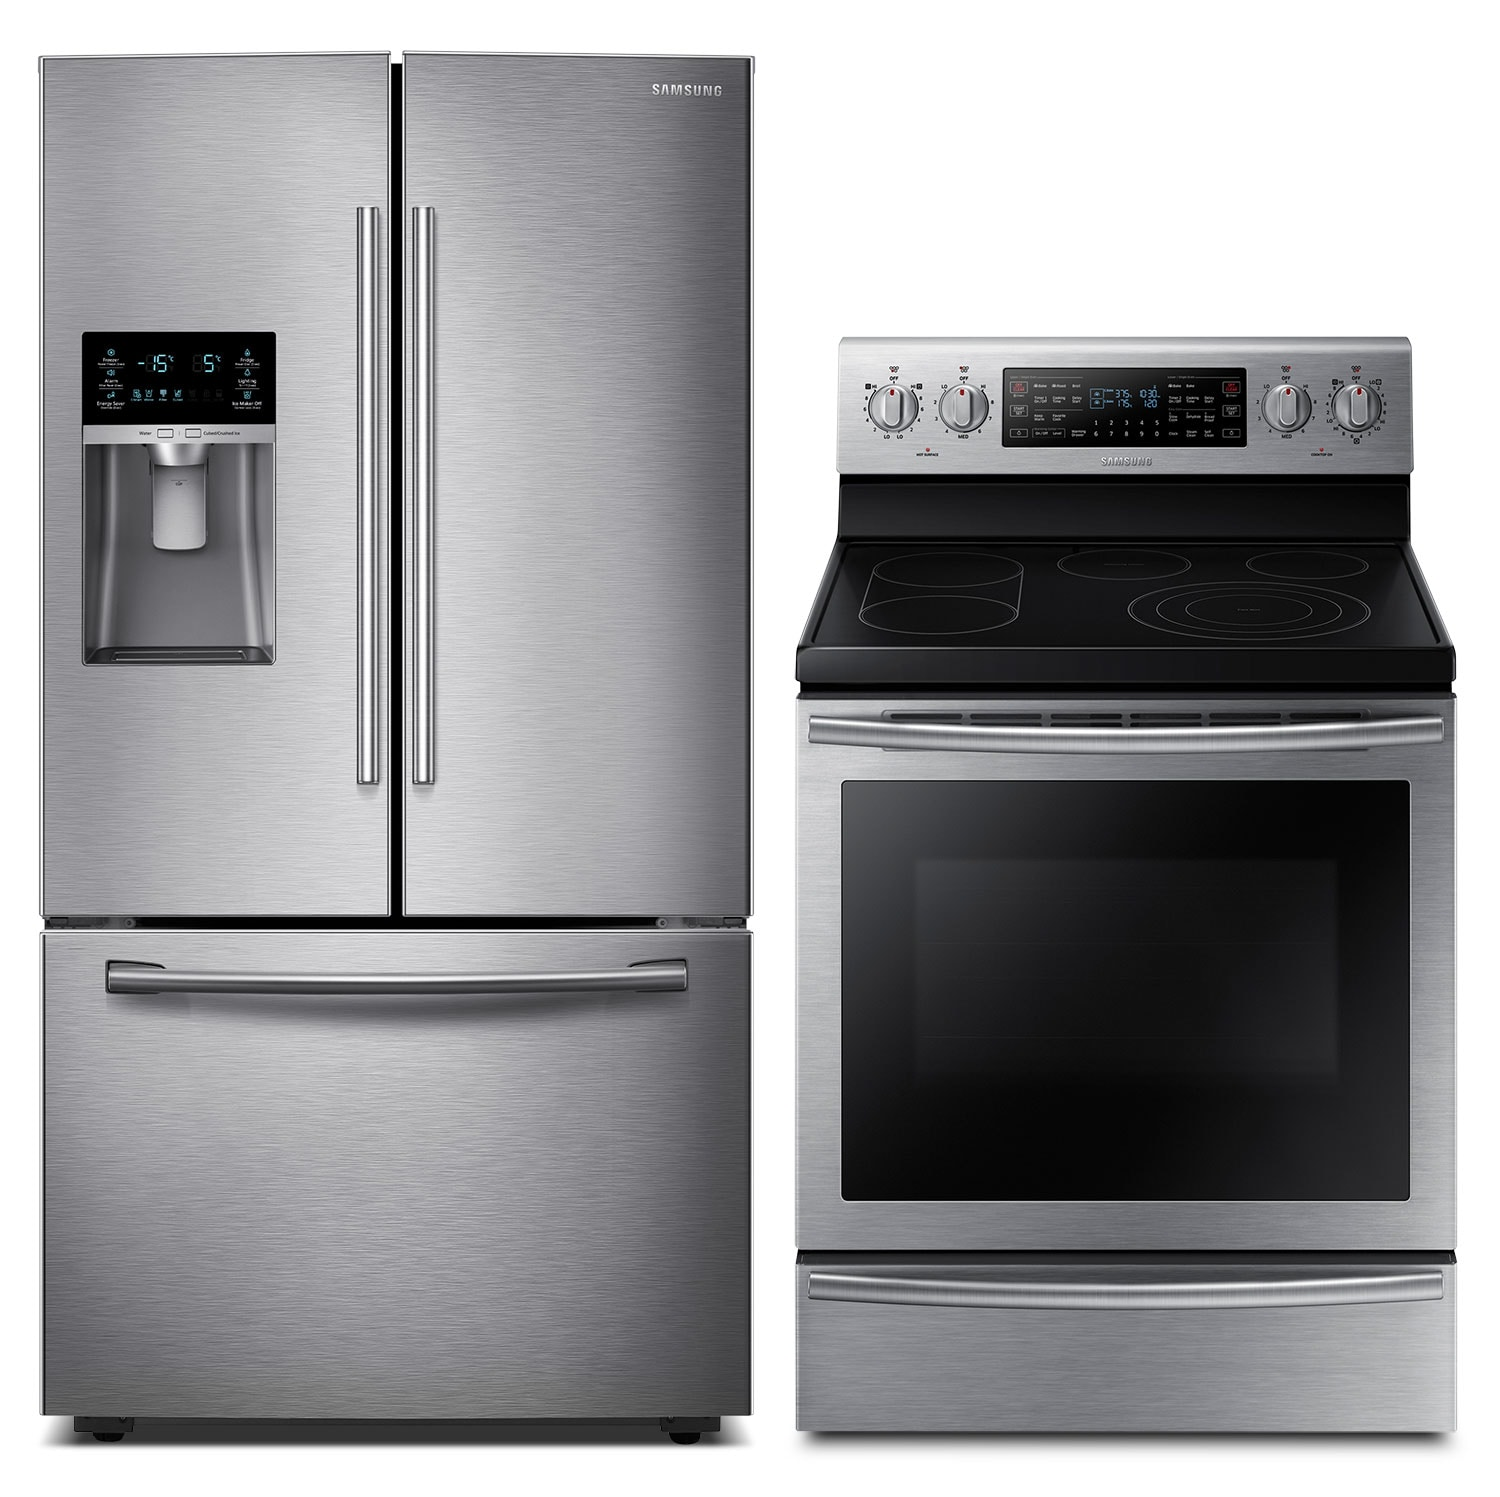 Cooking Products - Samsung 28 Cu. Ft. Refrigerator and 5.9 Cu. Ft. Electric Range – Stainless Steel